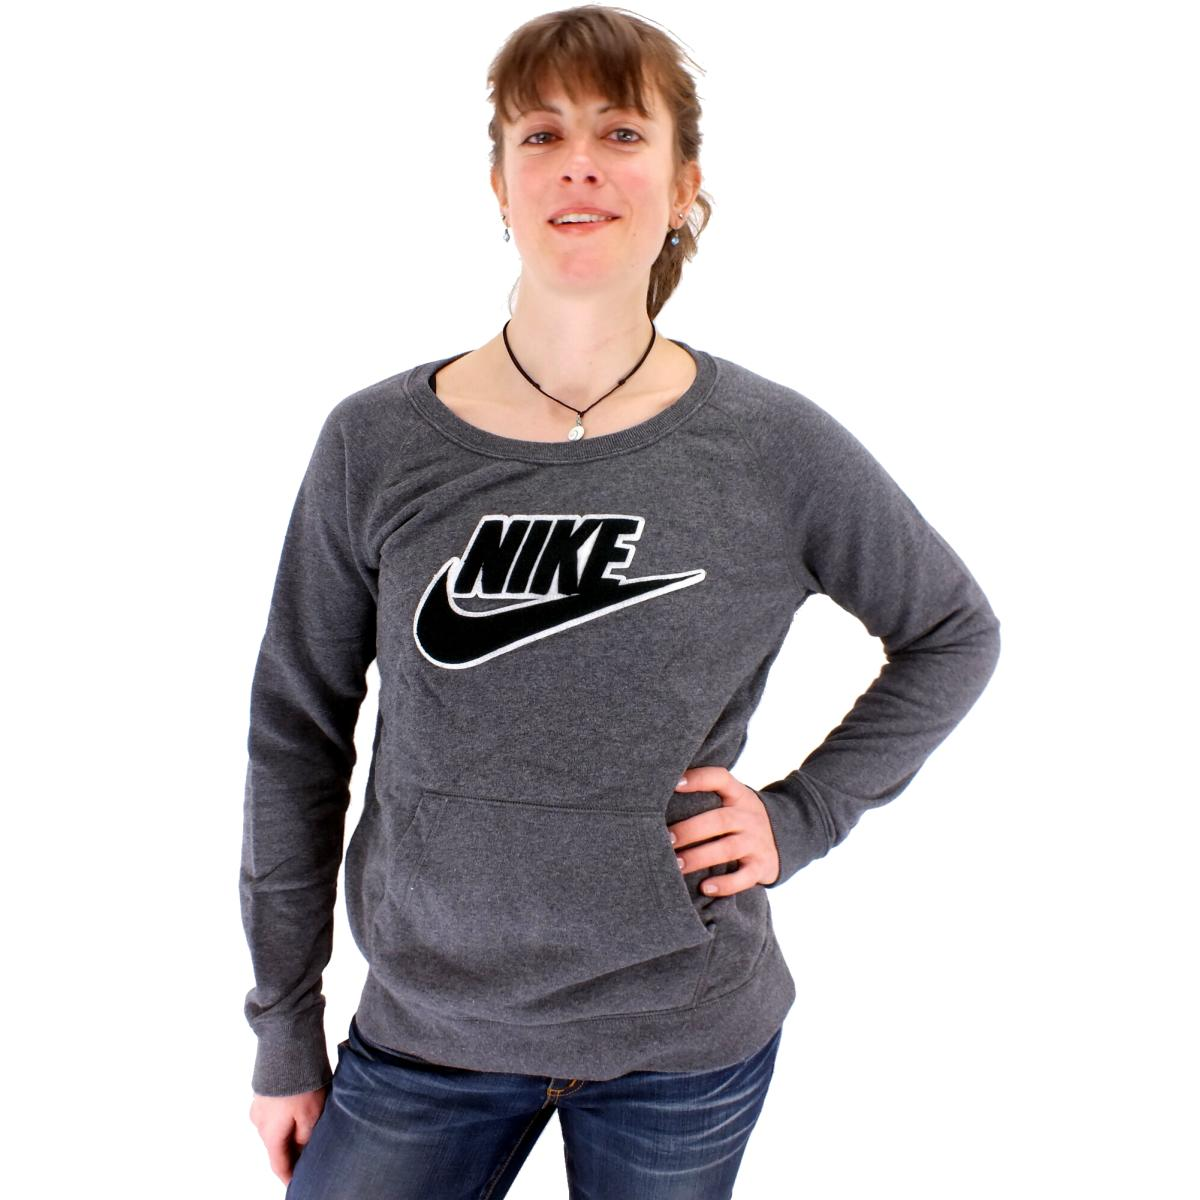 damen nike pullover nike schuhe online kaufen nike accessoires. Black Bedroom Furniture Sets. Home Design Ideas